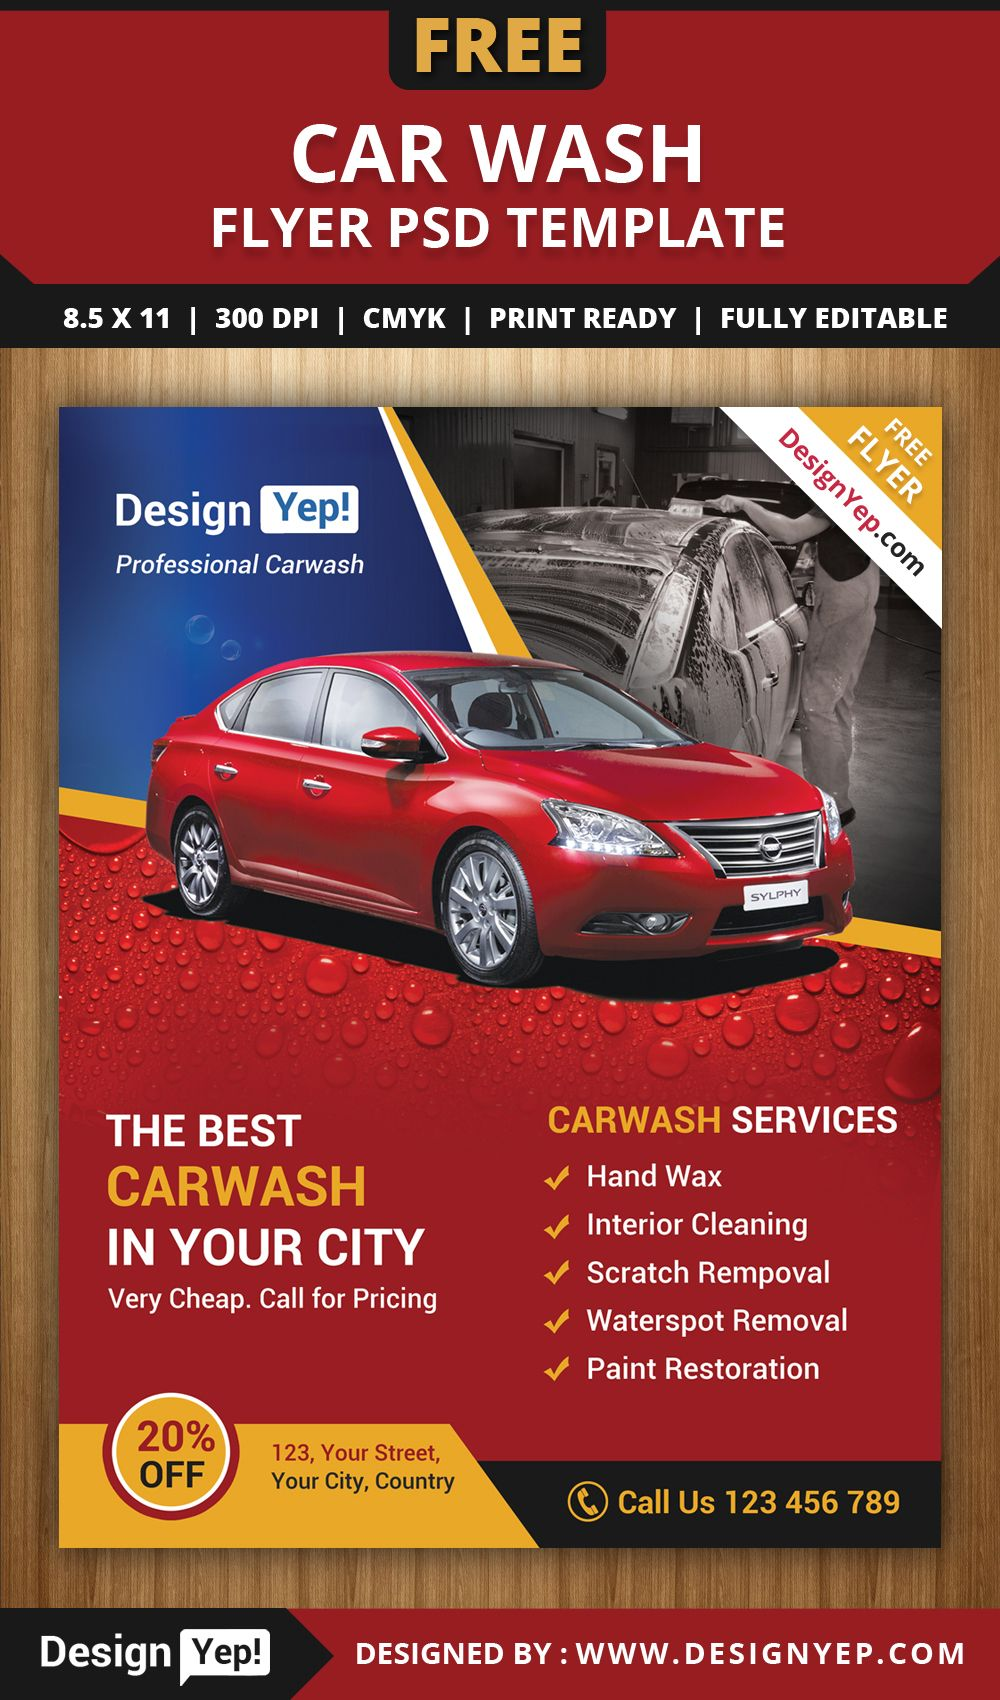 car wash flyer psd template designyep flyers car wash flyer psd template designyep